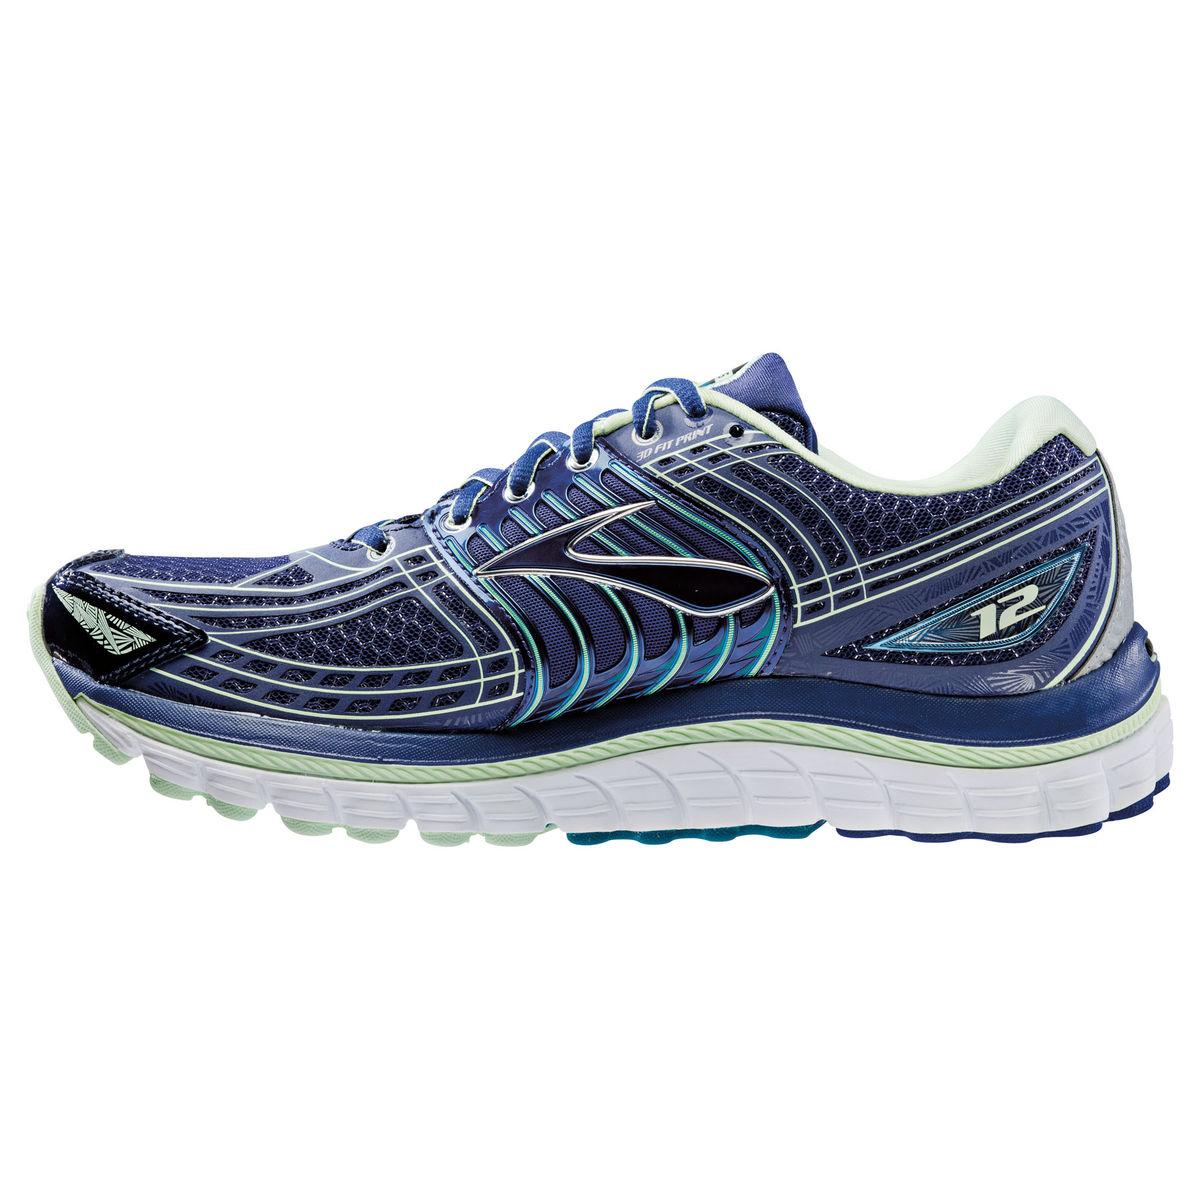 Brooks Golf Shoes Women